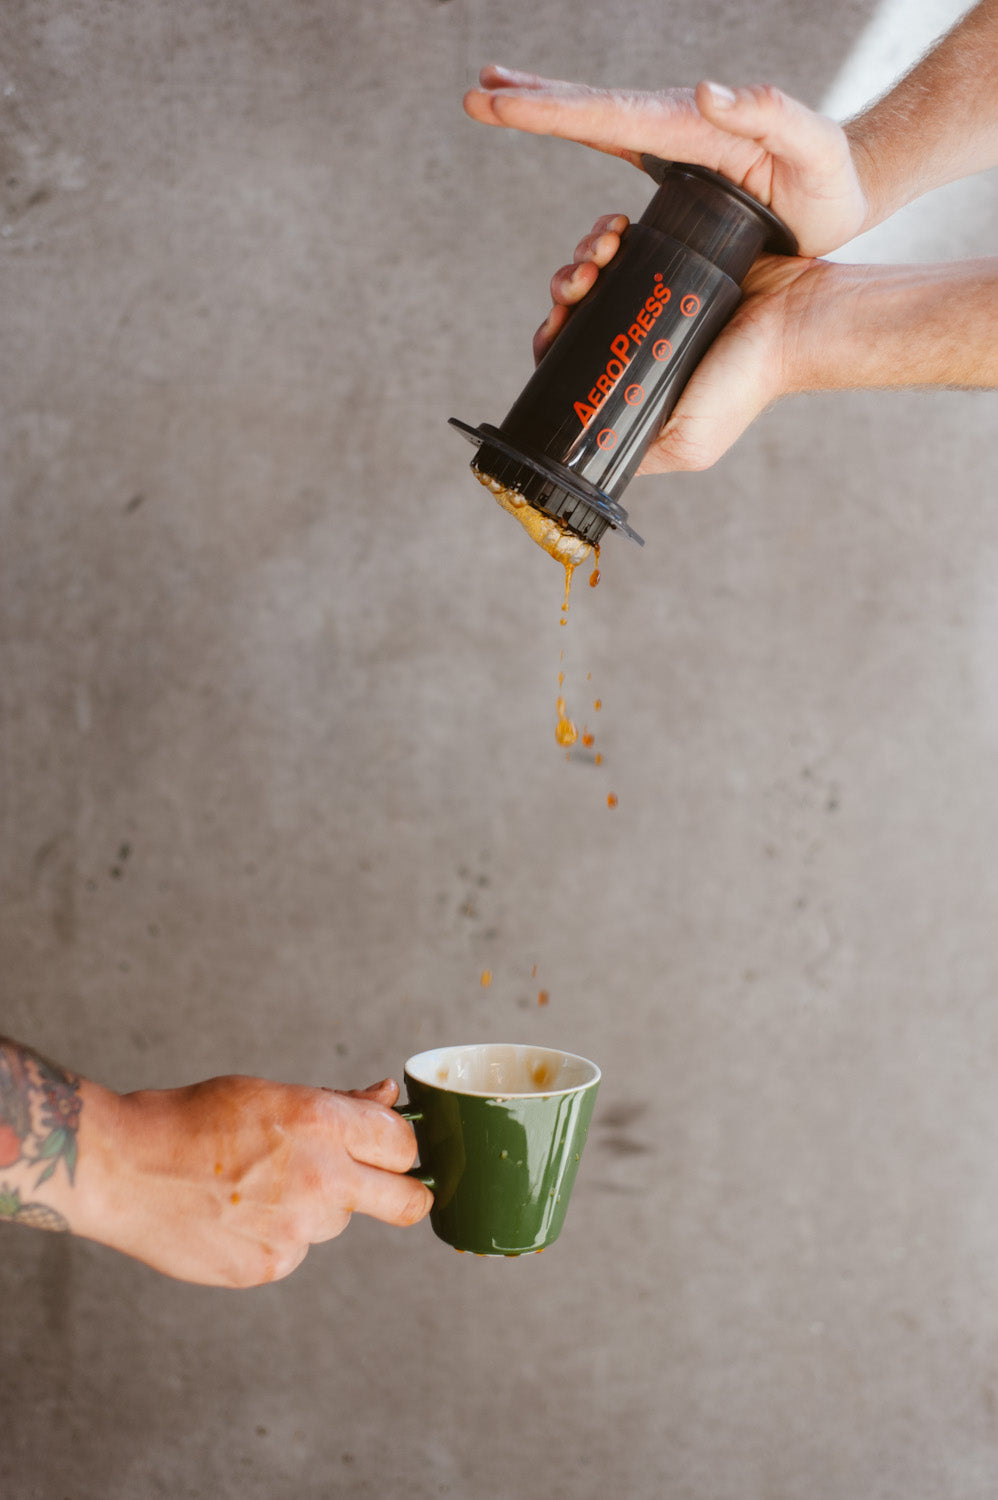 Aeropress Brew Class Monday 22 February 2021